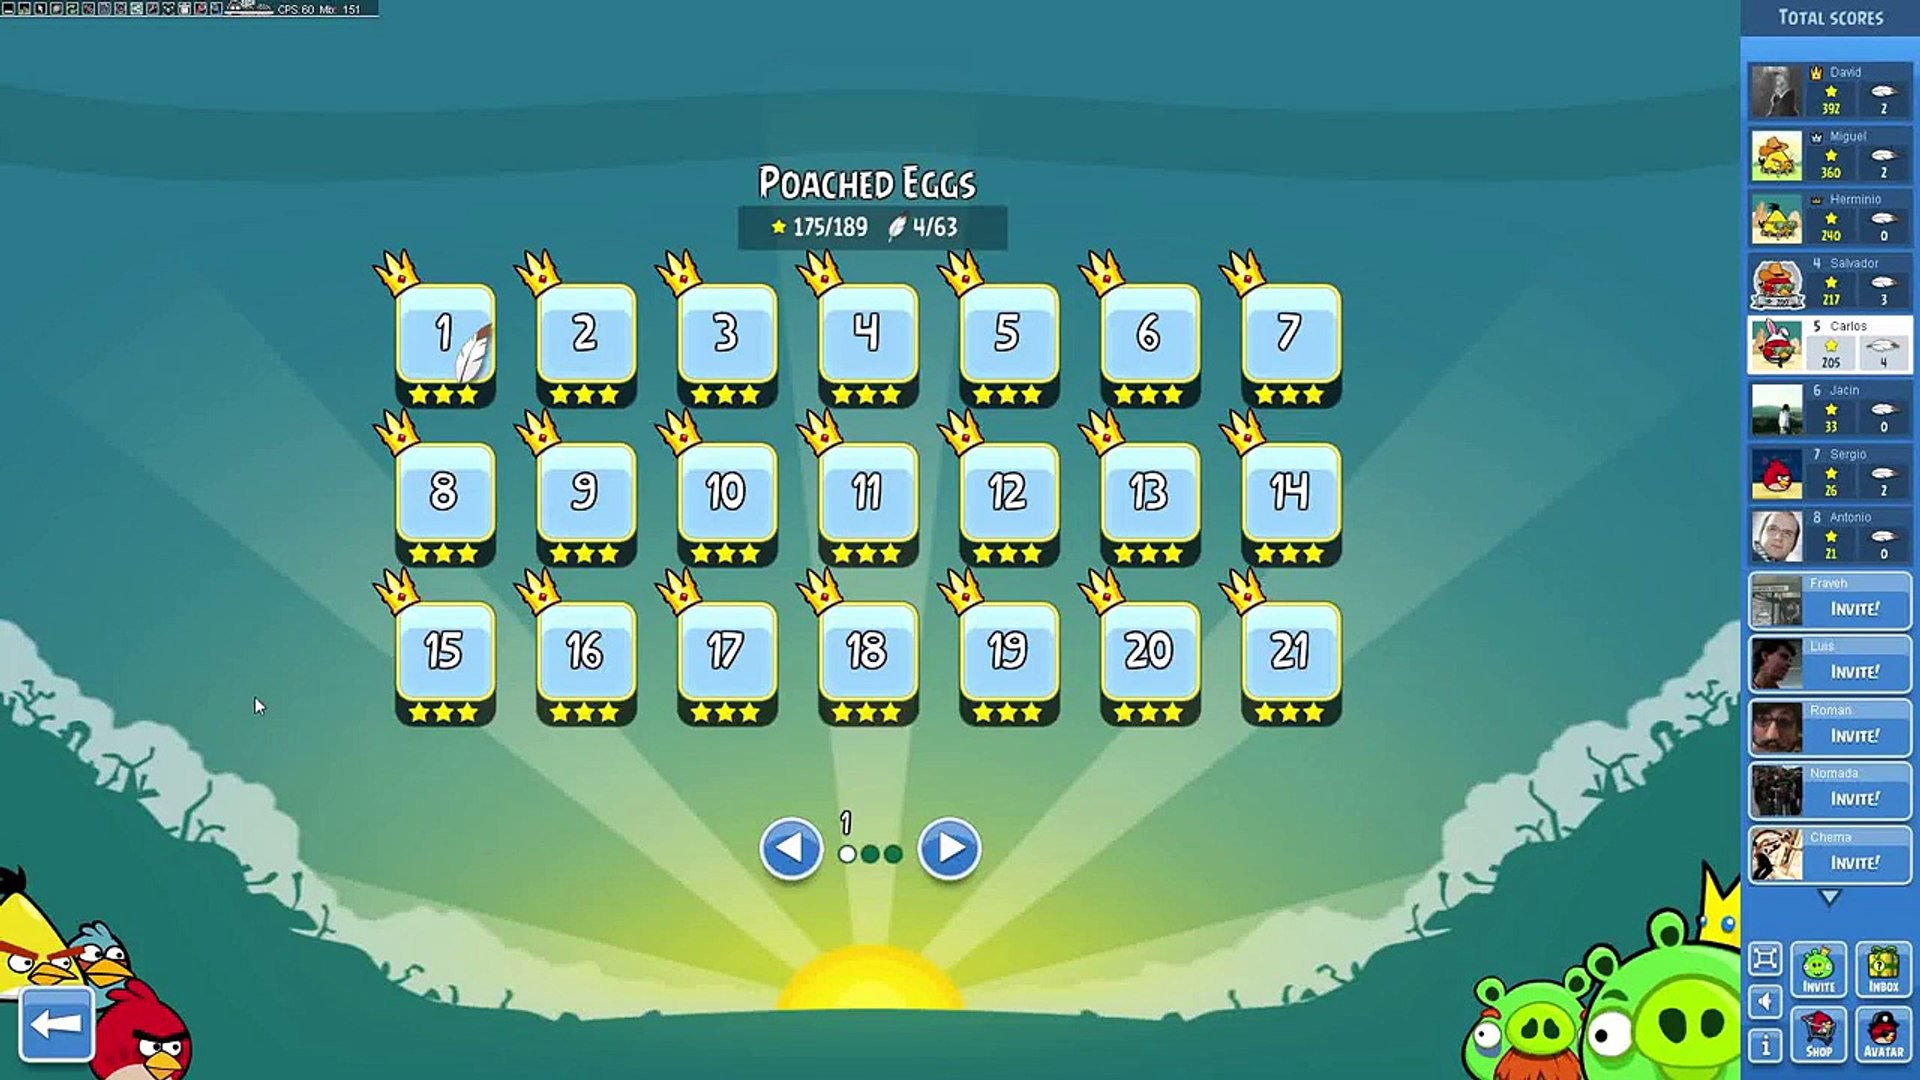 Infinite Birds in Angry Birds Facebook